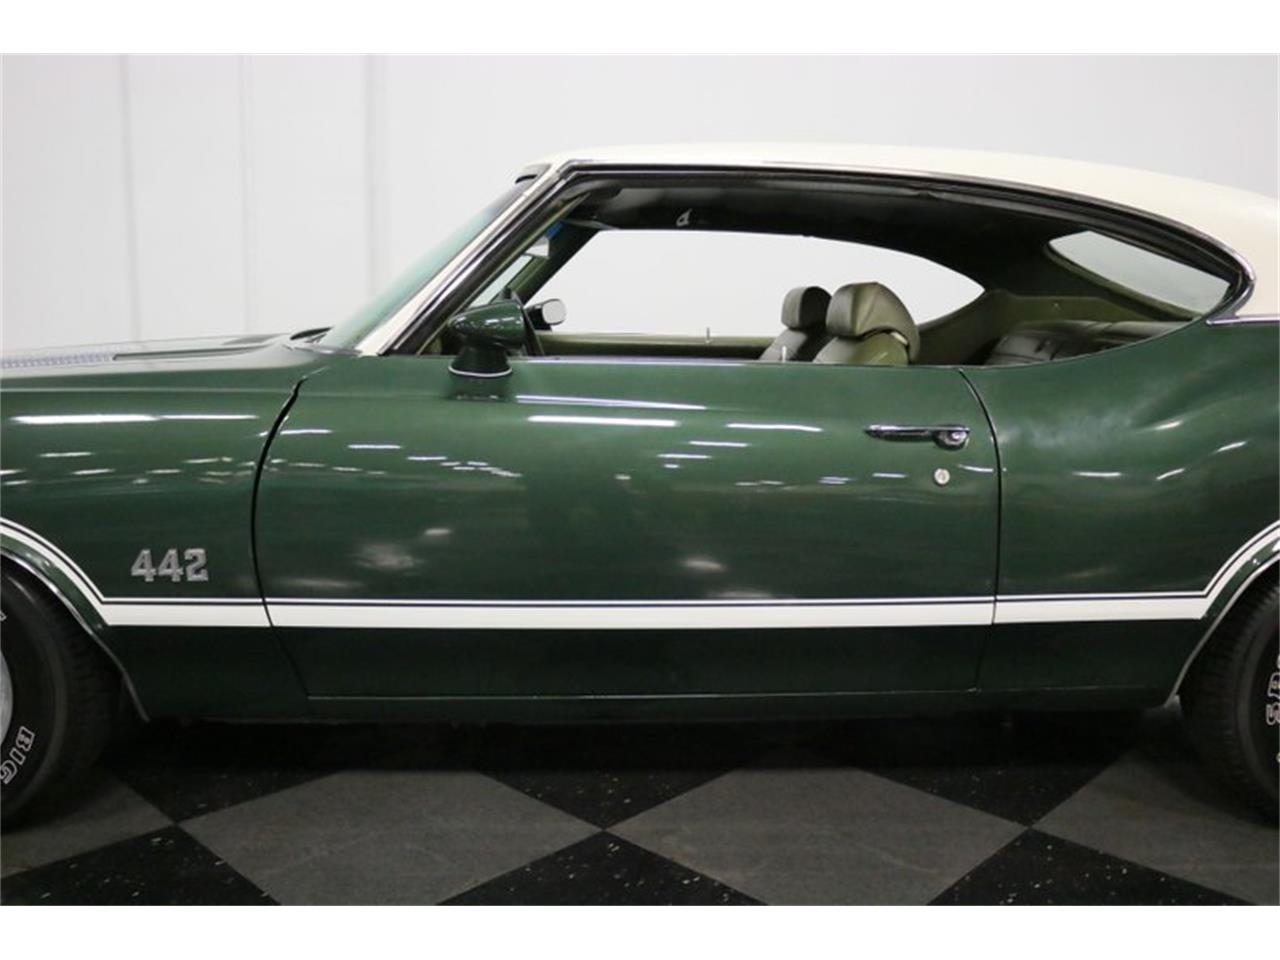 Large Picture of '71 Oldsmobile 442 located in Ft Worth Texas Offered by Streetside Classics - Dallas / Fort Worth - QTLT